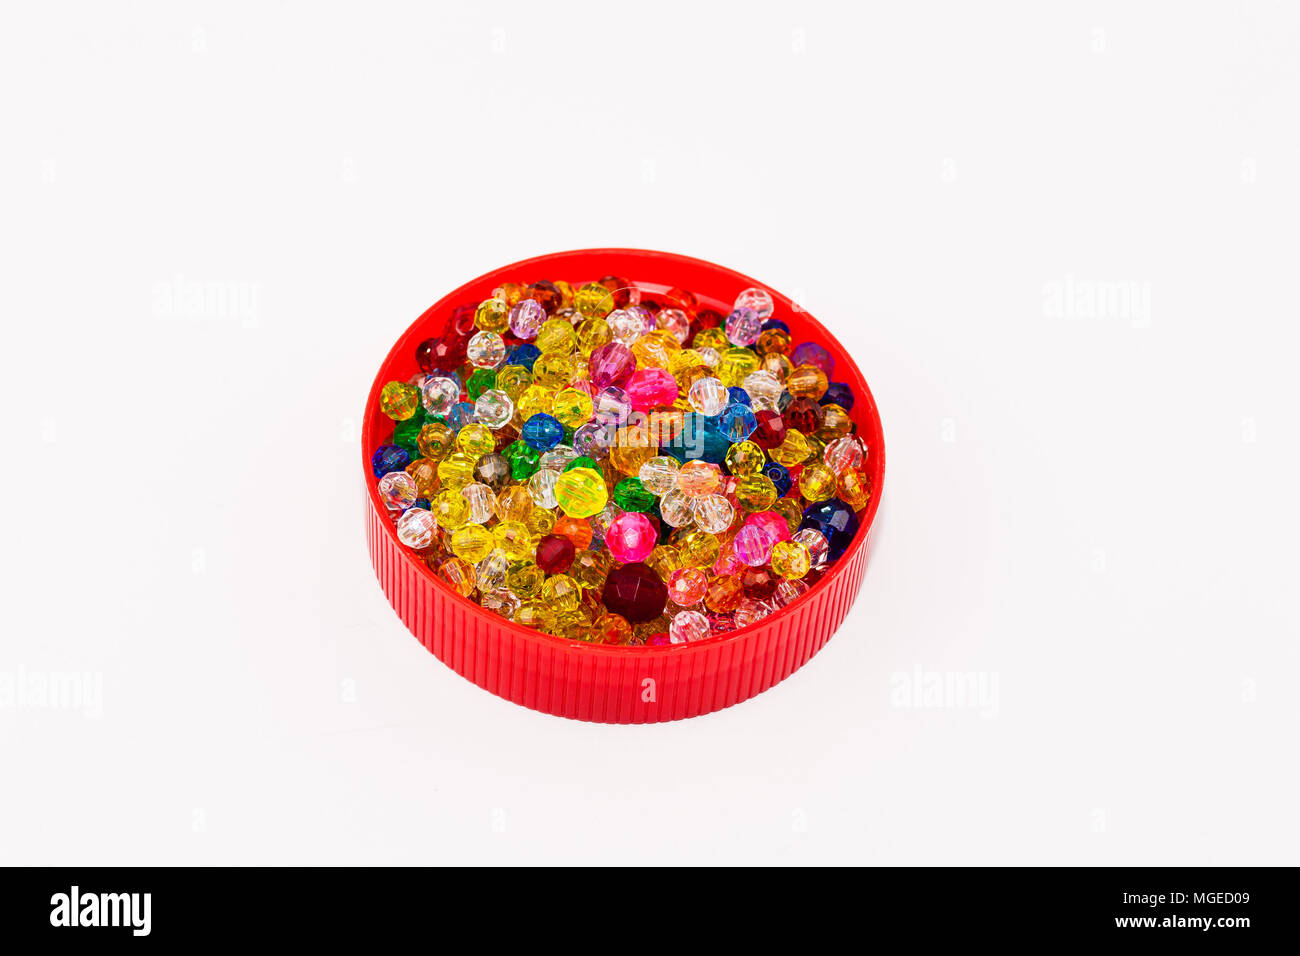 Cap full of multi colored beads - Stock Image